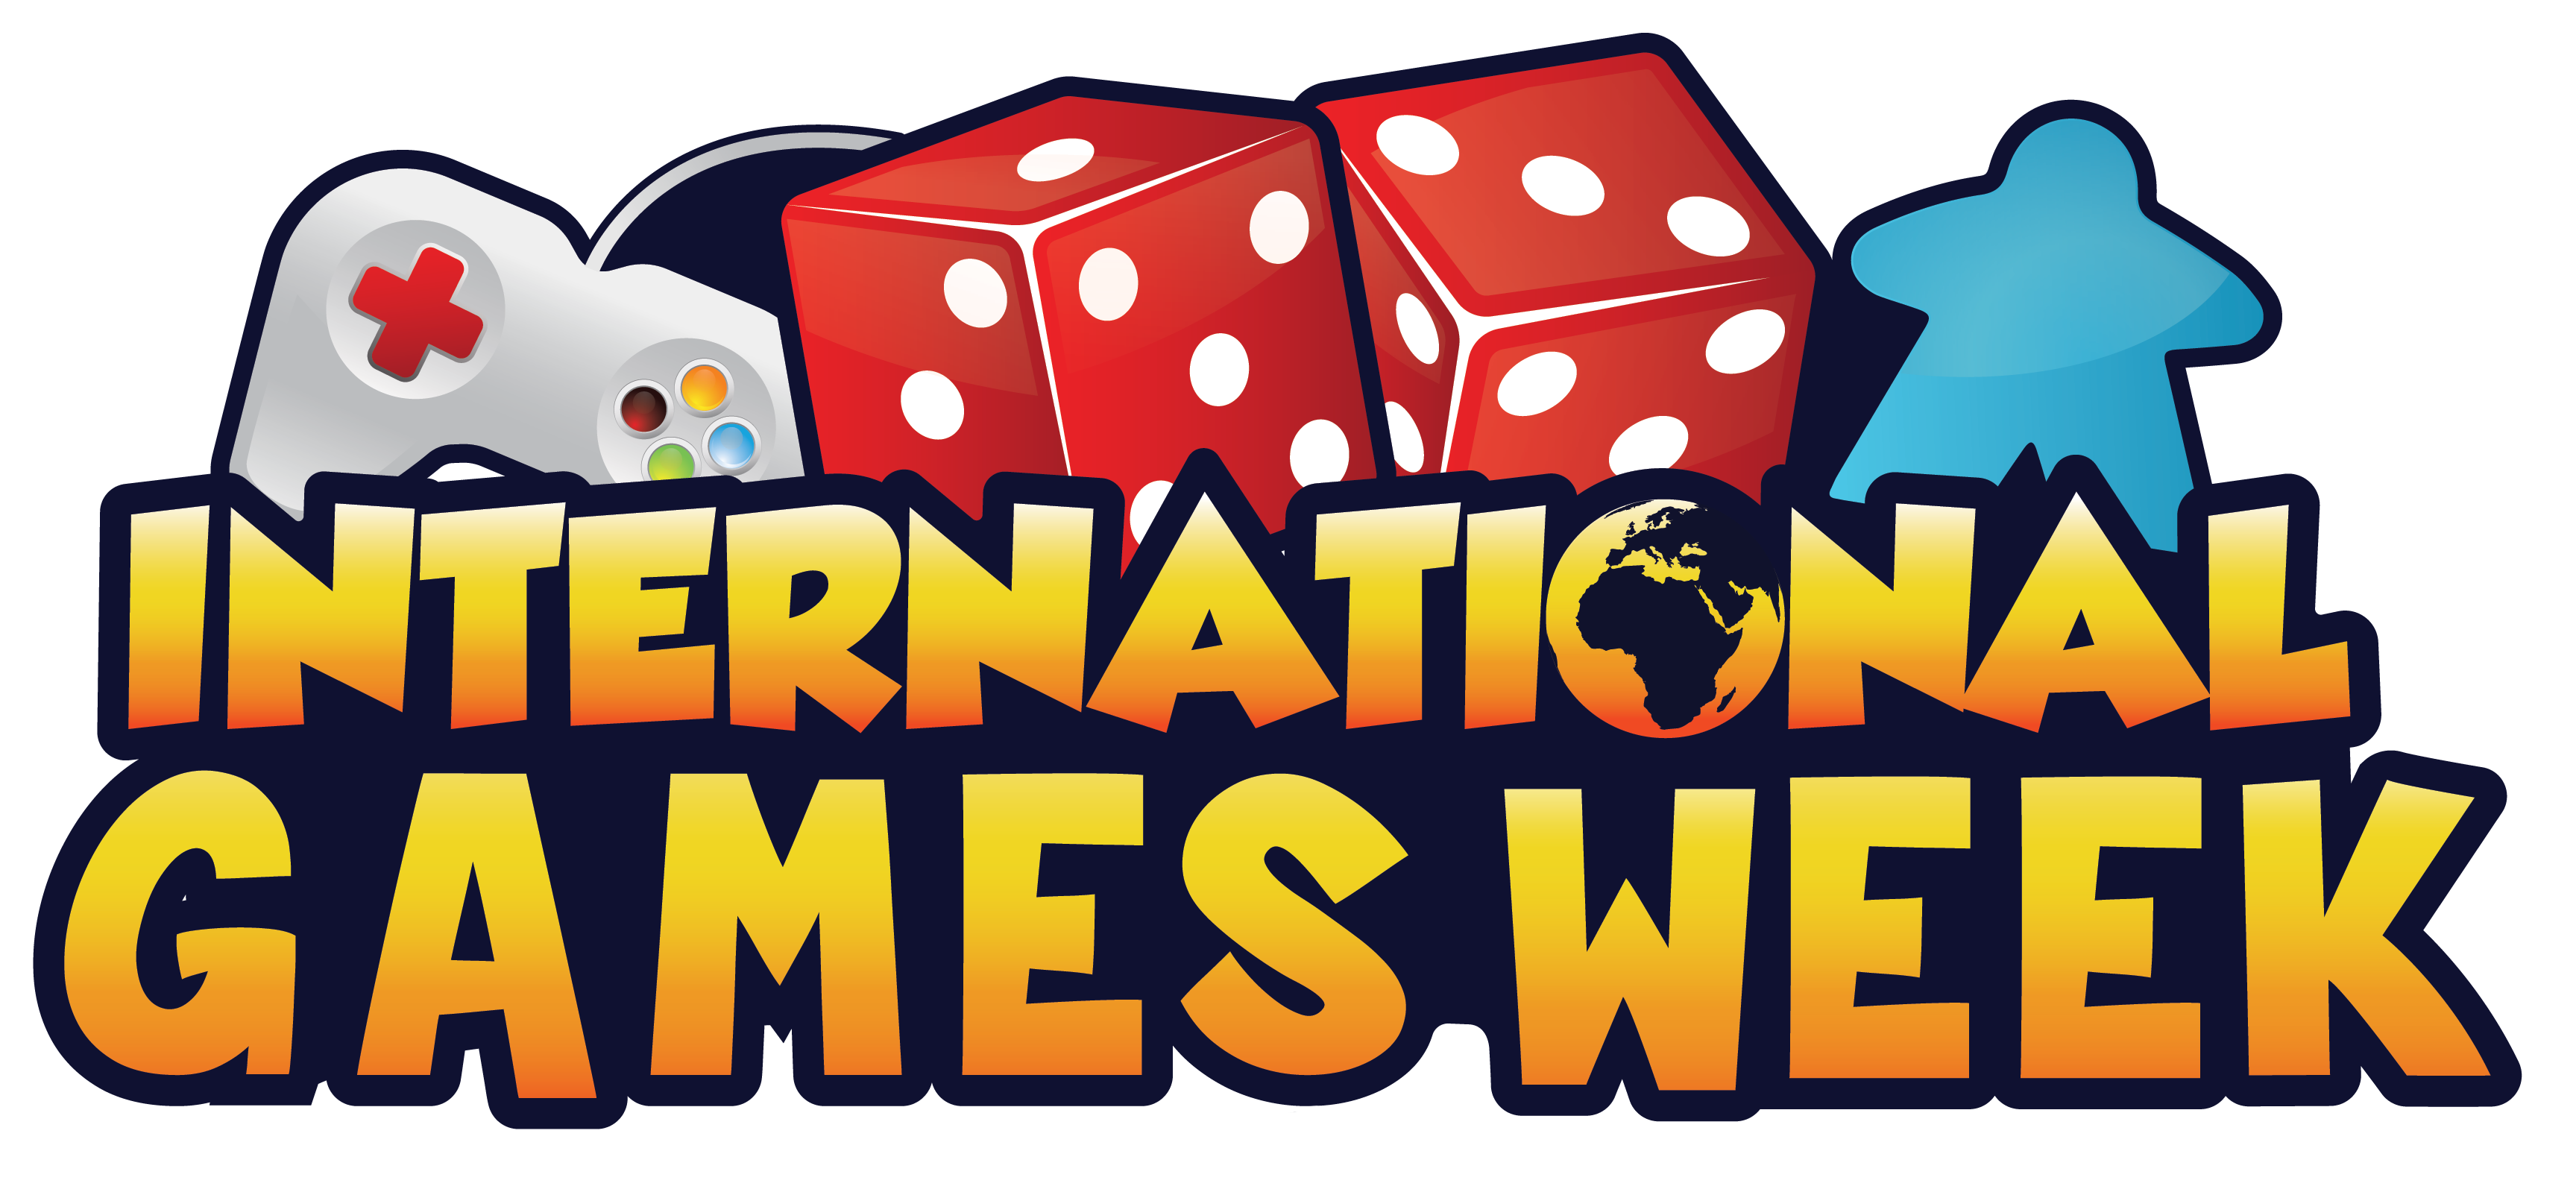 IGW Promotional Materials – Games in Libraries